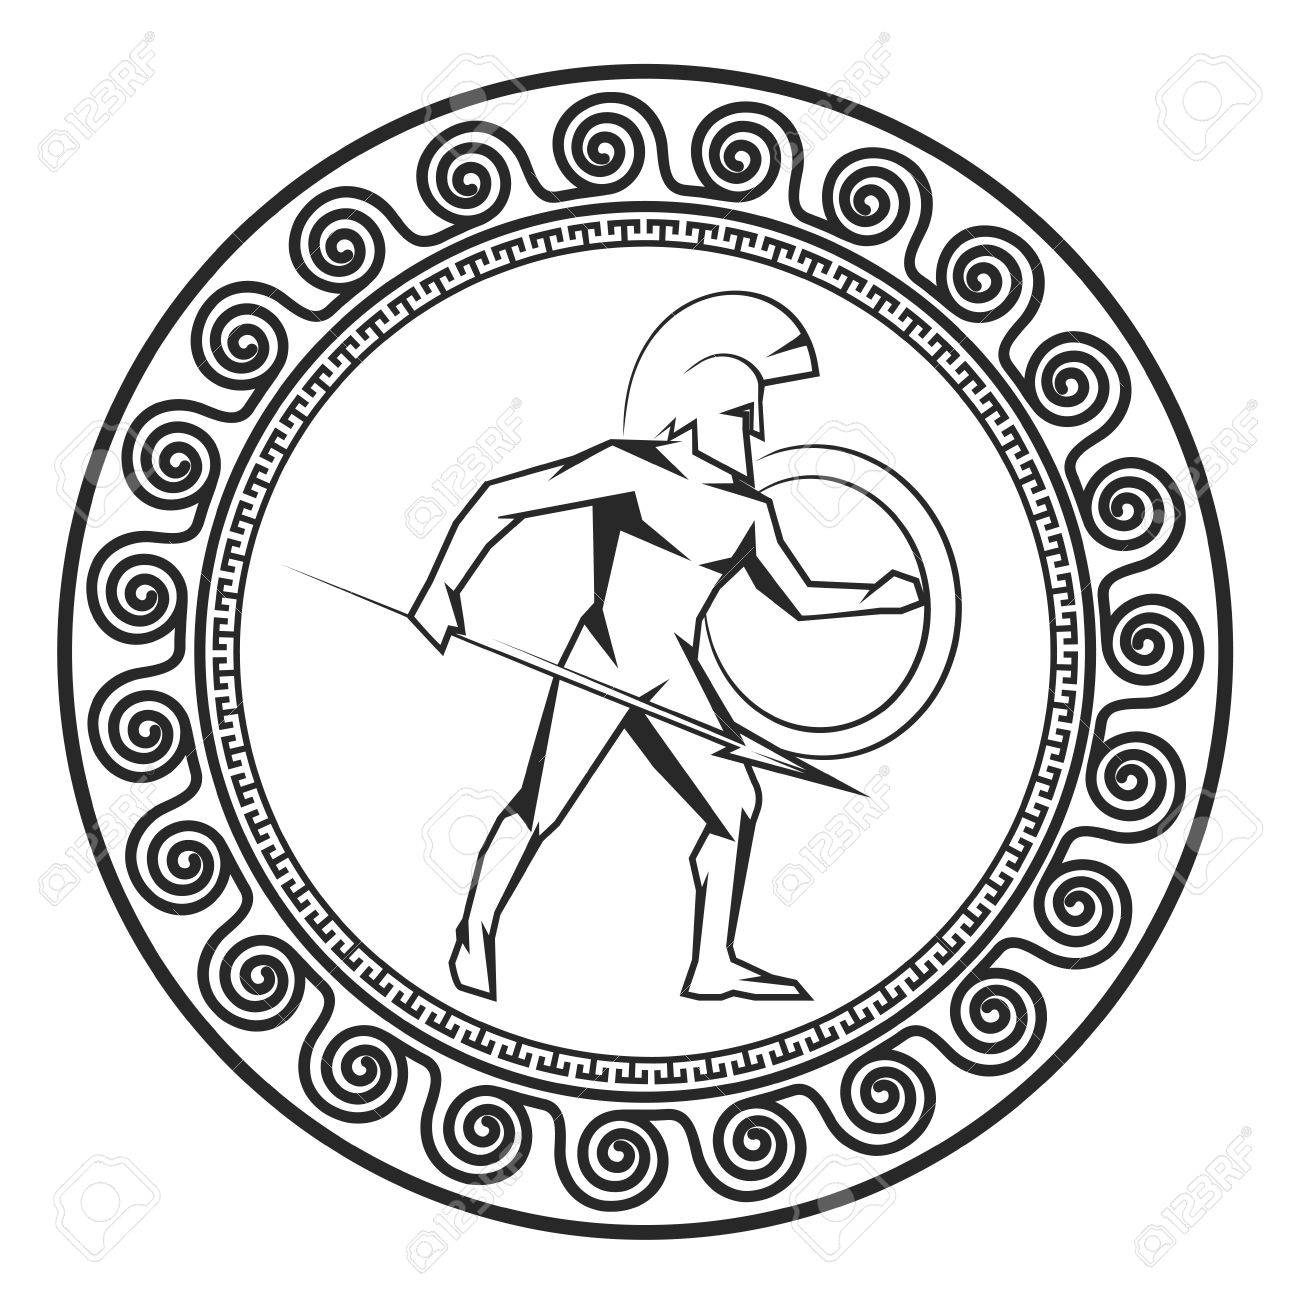 Symbol With The Greek Soldier Silhouette Of The Spartan Soldier